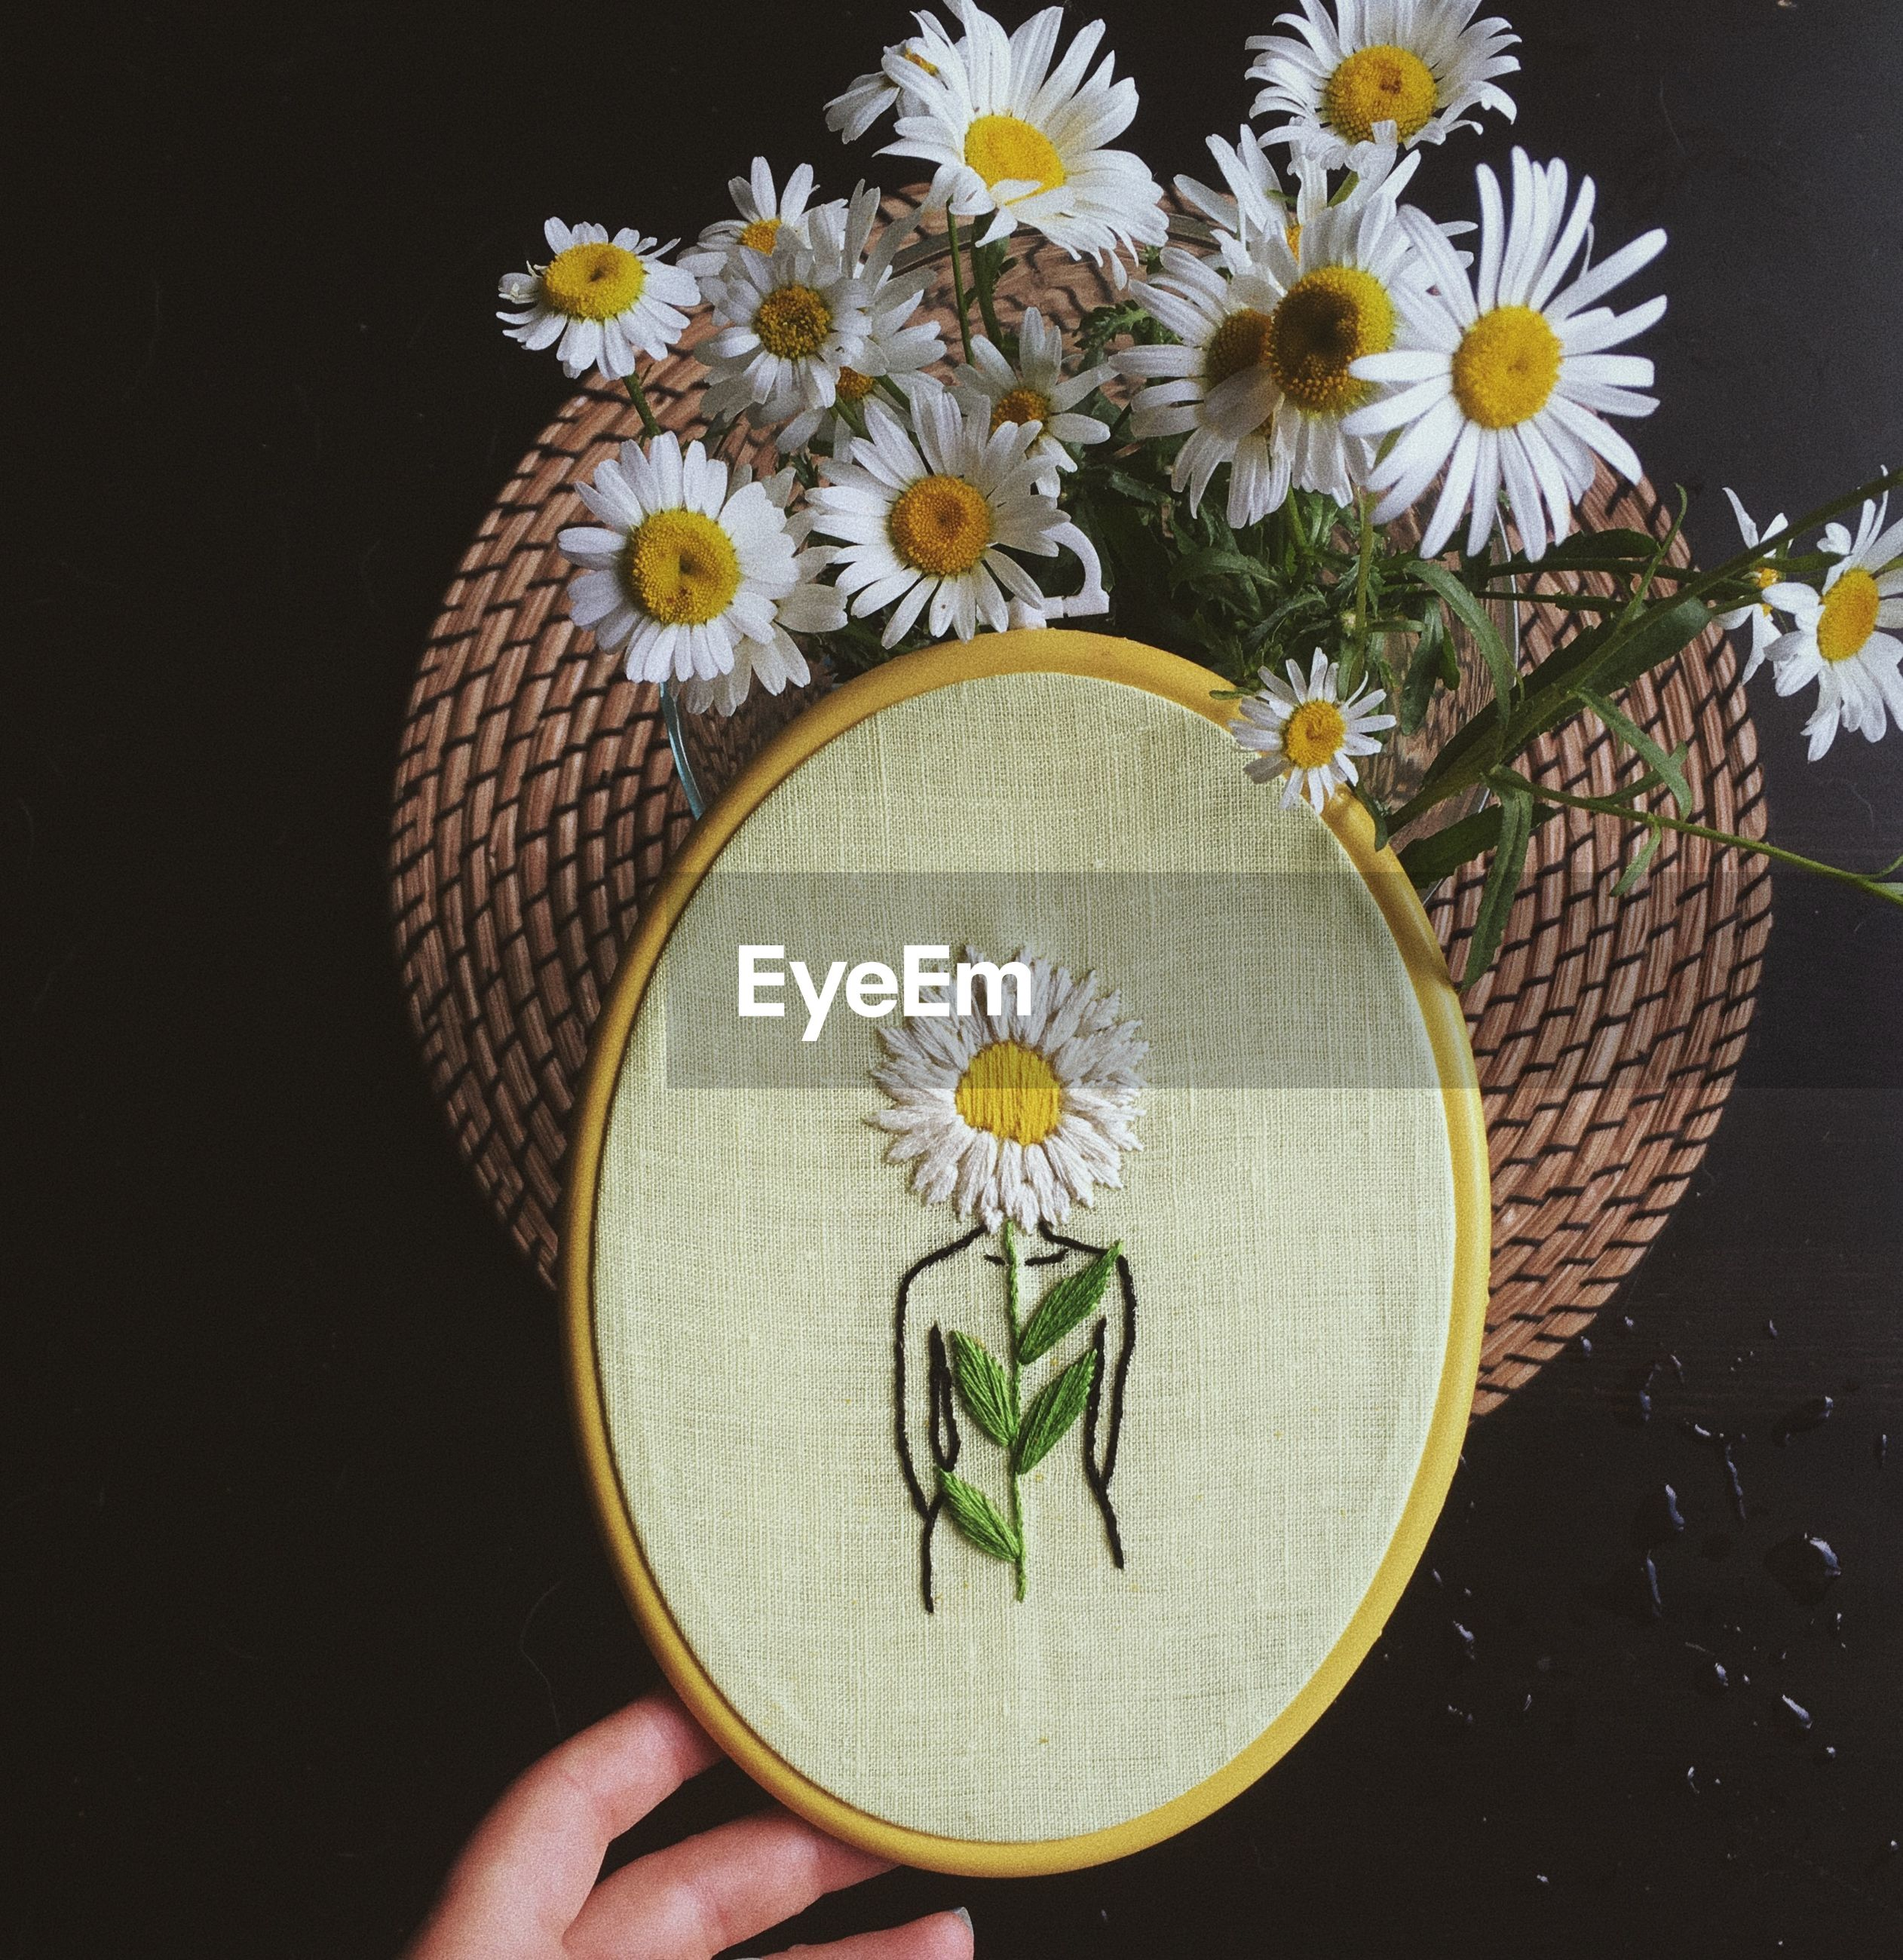 Close-up of hand holding embroidery art over white flowering plants